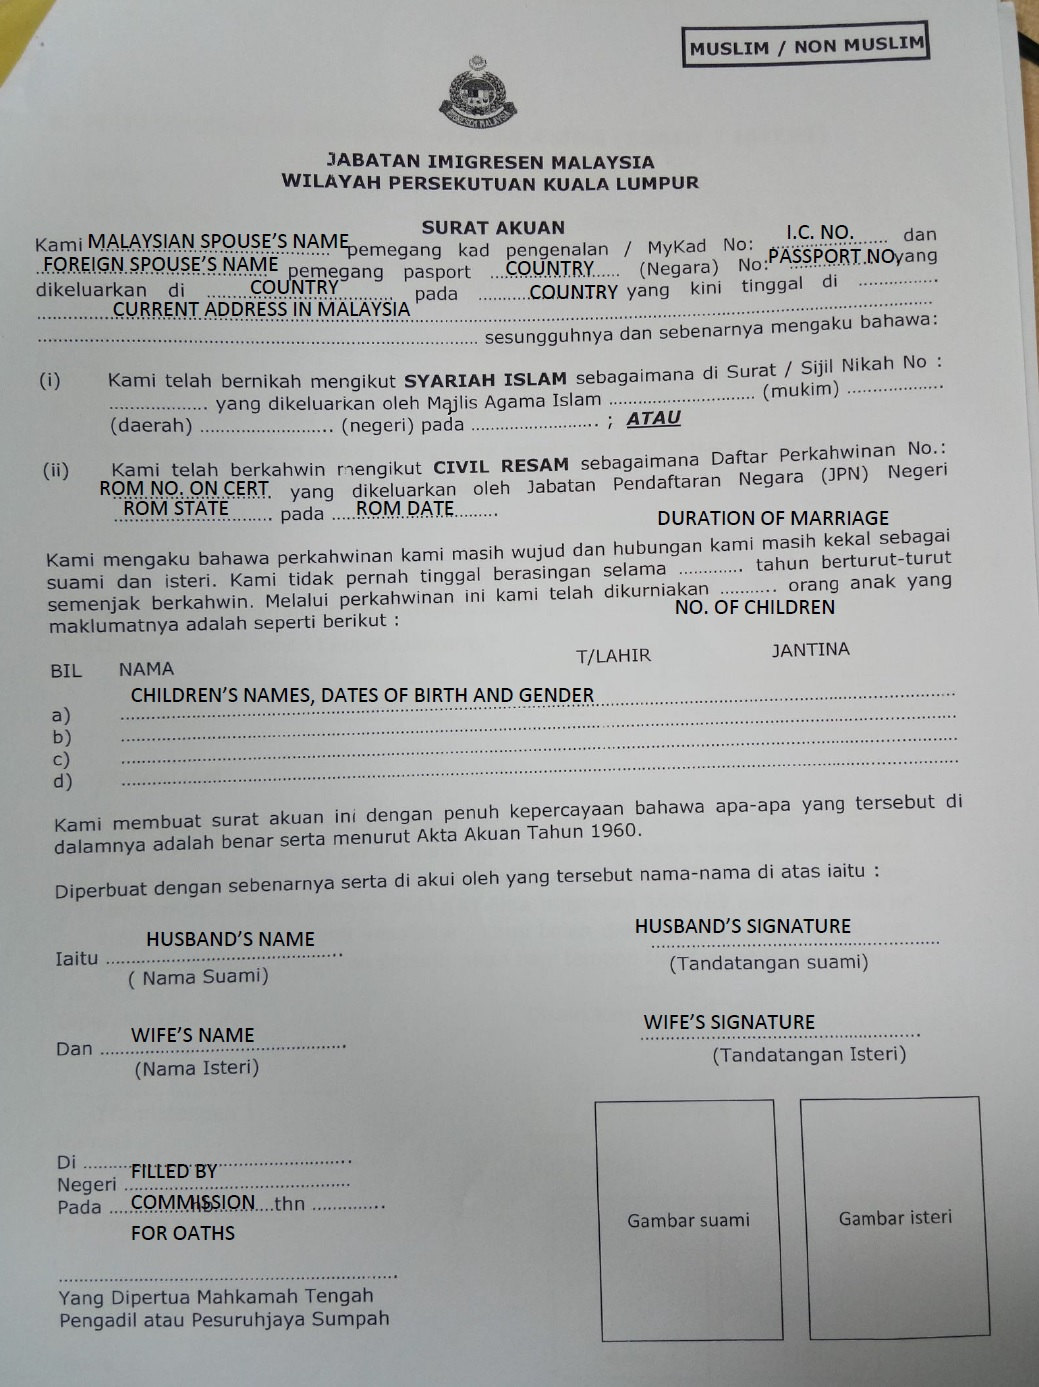 Her Blessed Life With An International Marriage And English Teaching How To Fill In A Statutory Declaration Surat Akuan Sumpah Perkahwinan For Foreign Spouses